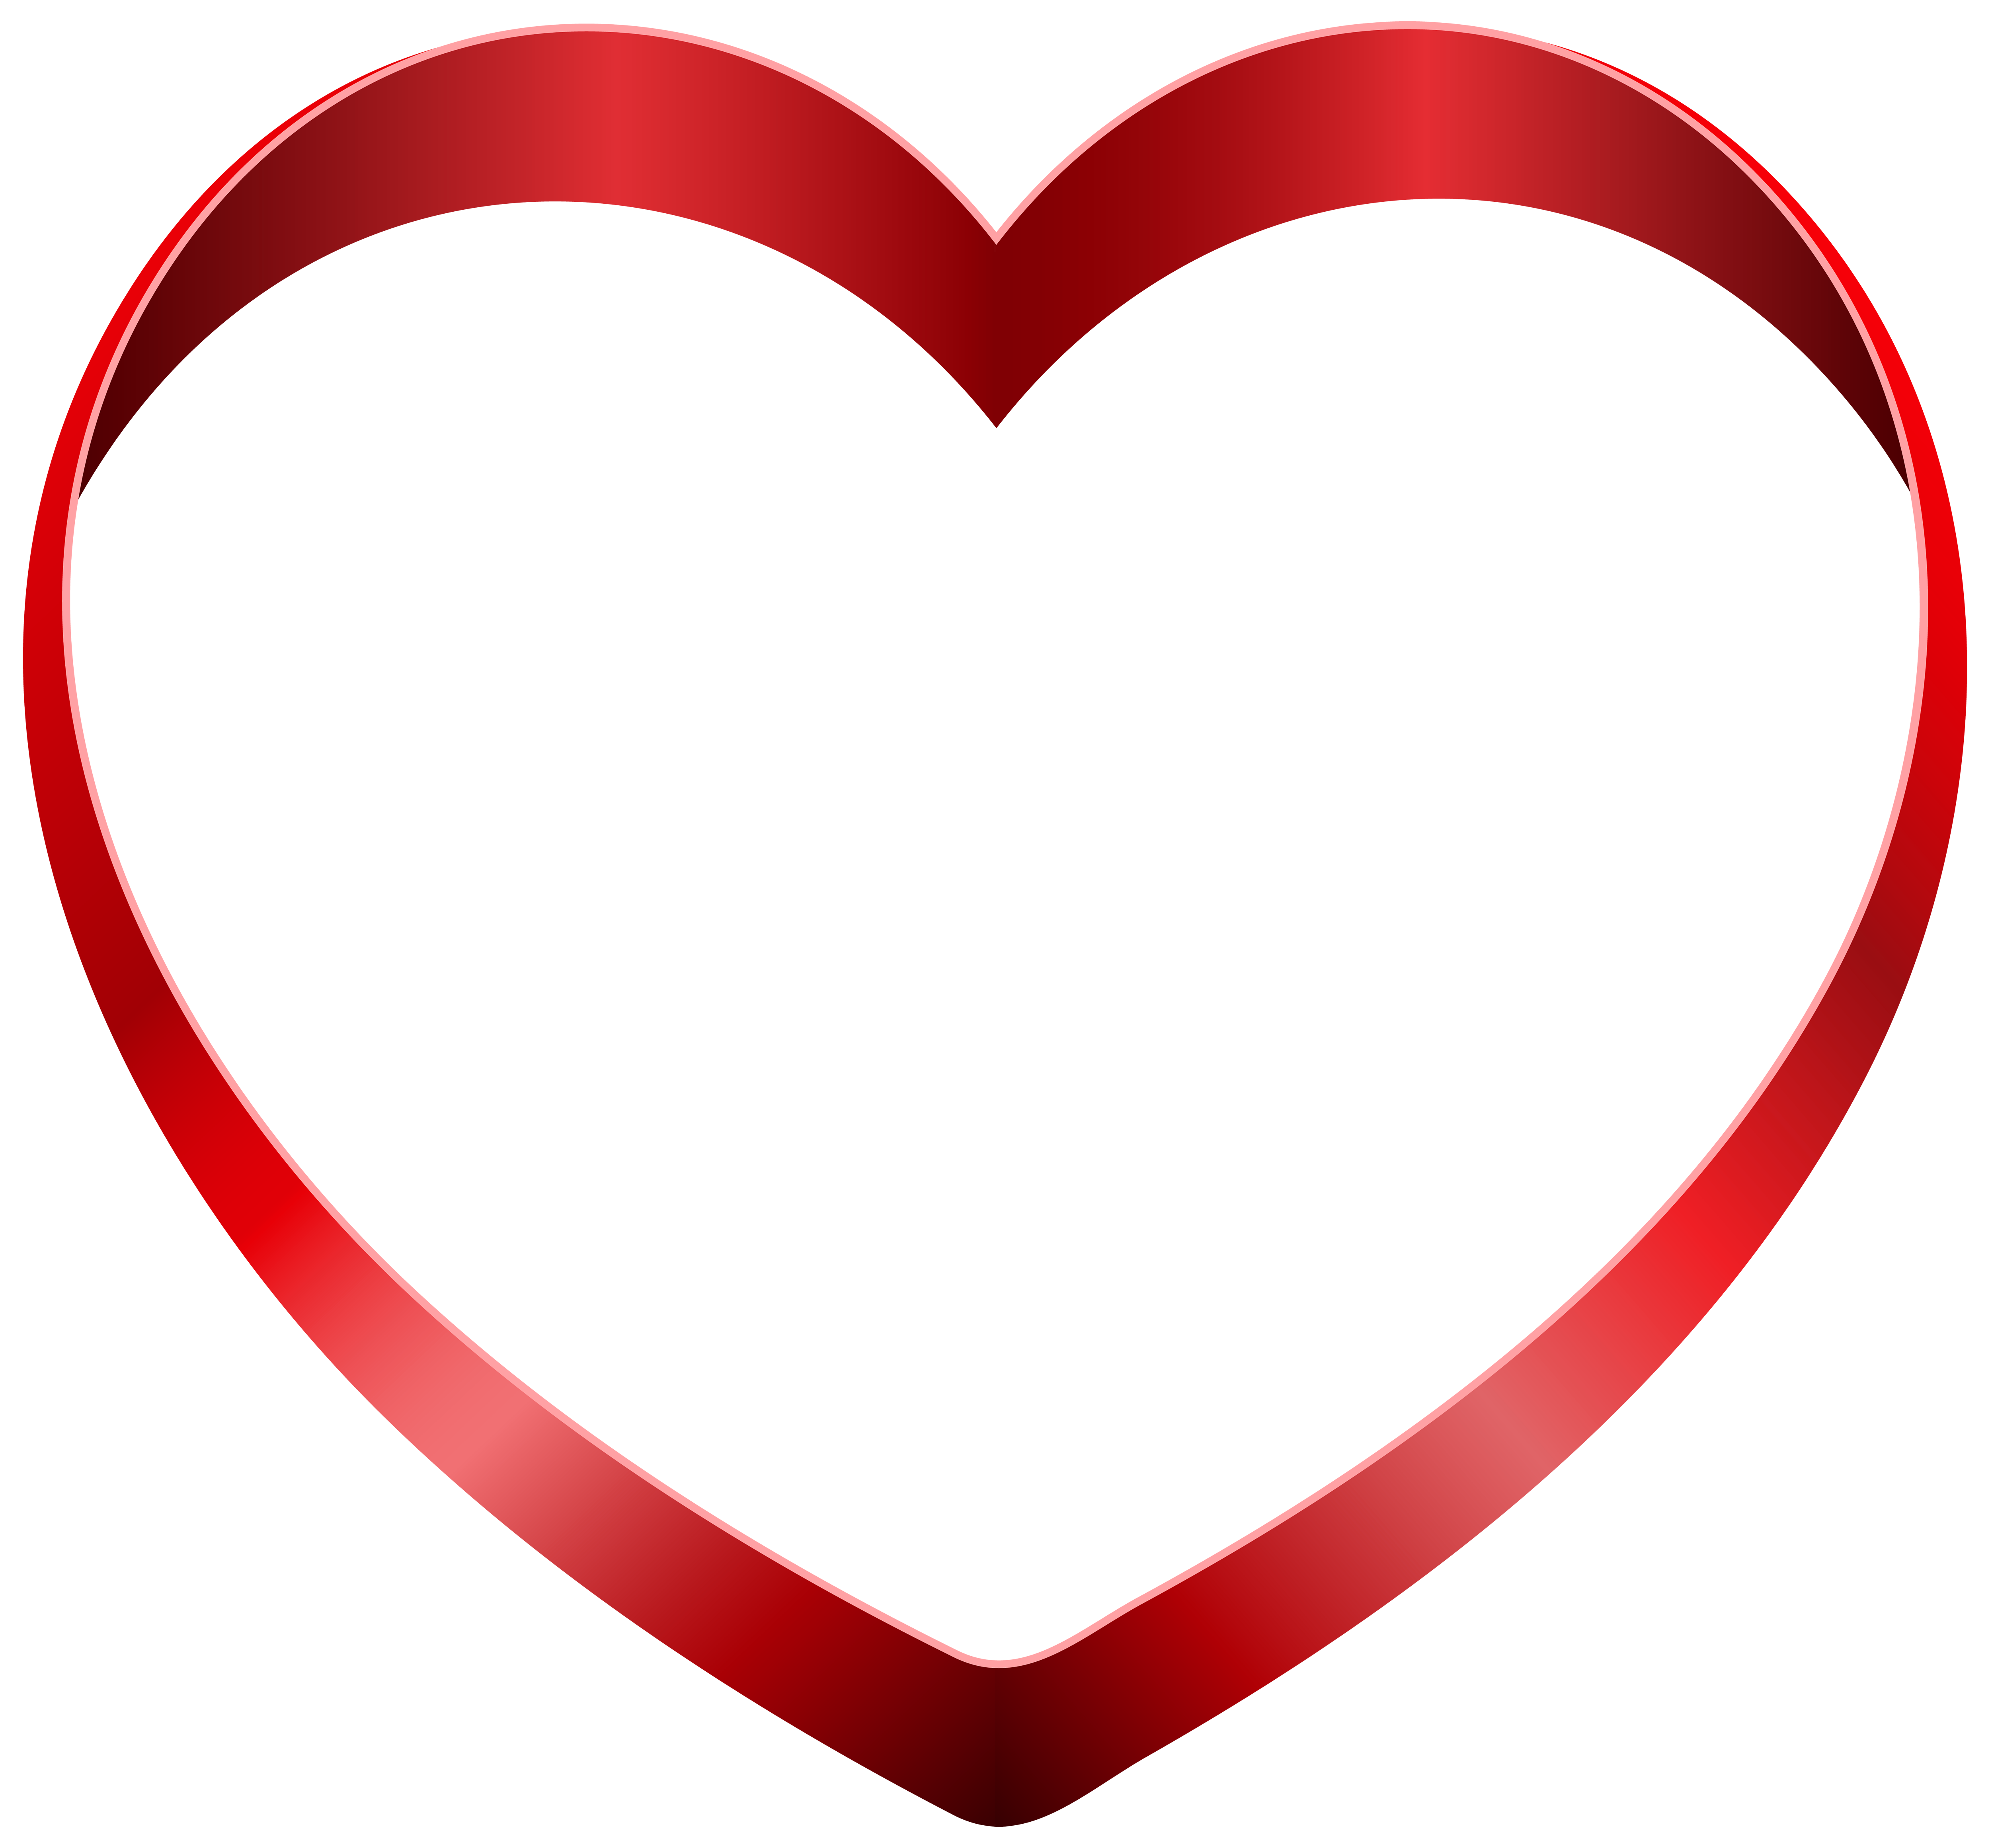 Transparent heart png icon. Heartbeat clipart blue